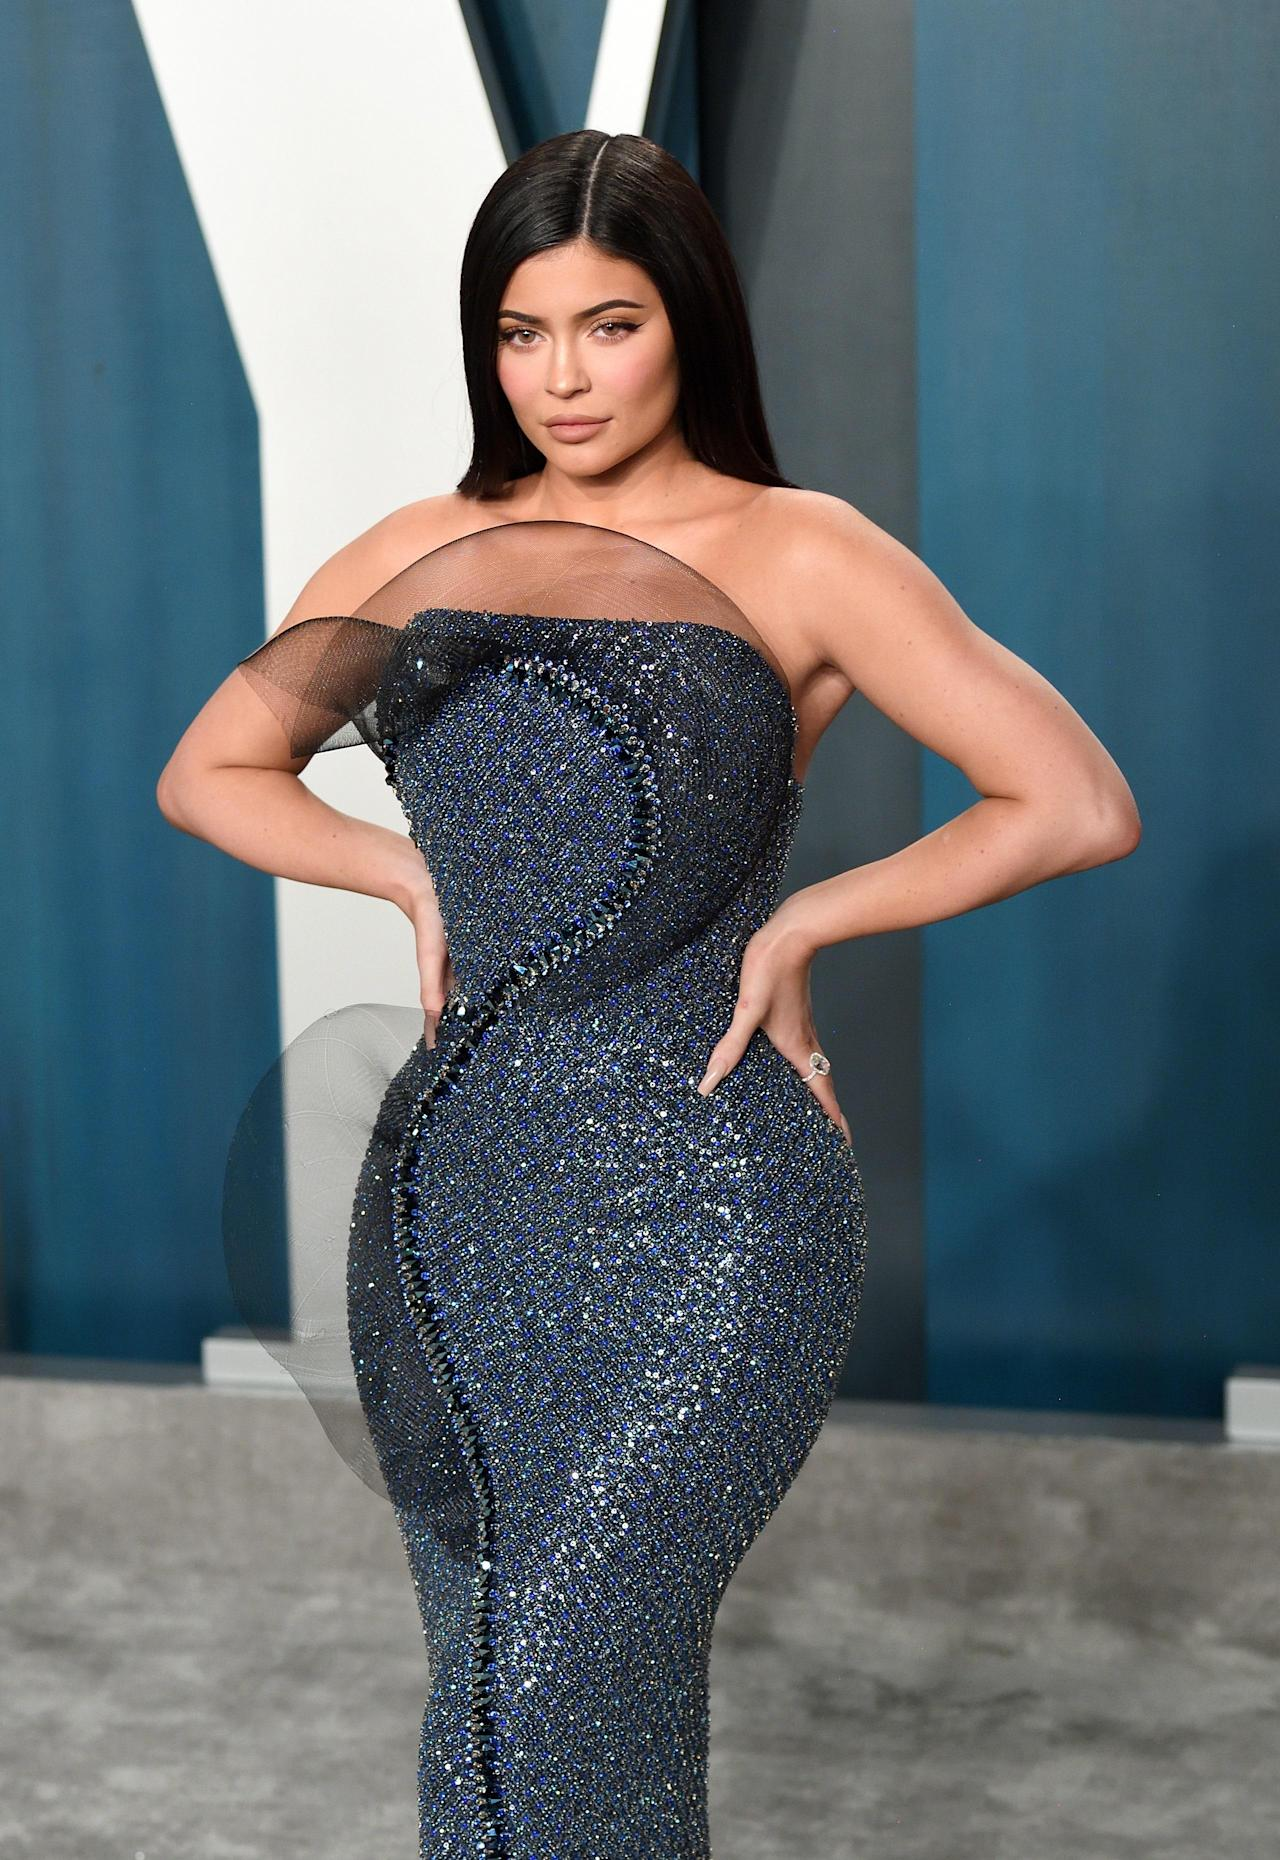 Kylie Jenner Donated $1 Million to Los Angeles Healthcare ...